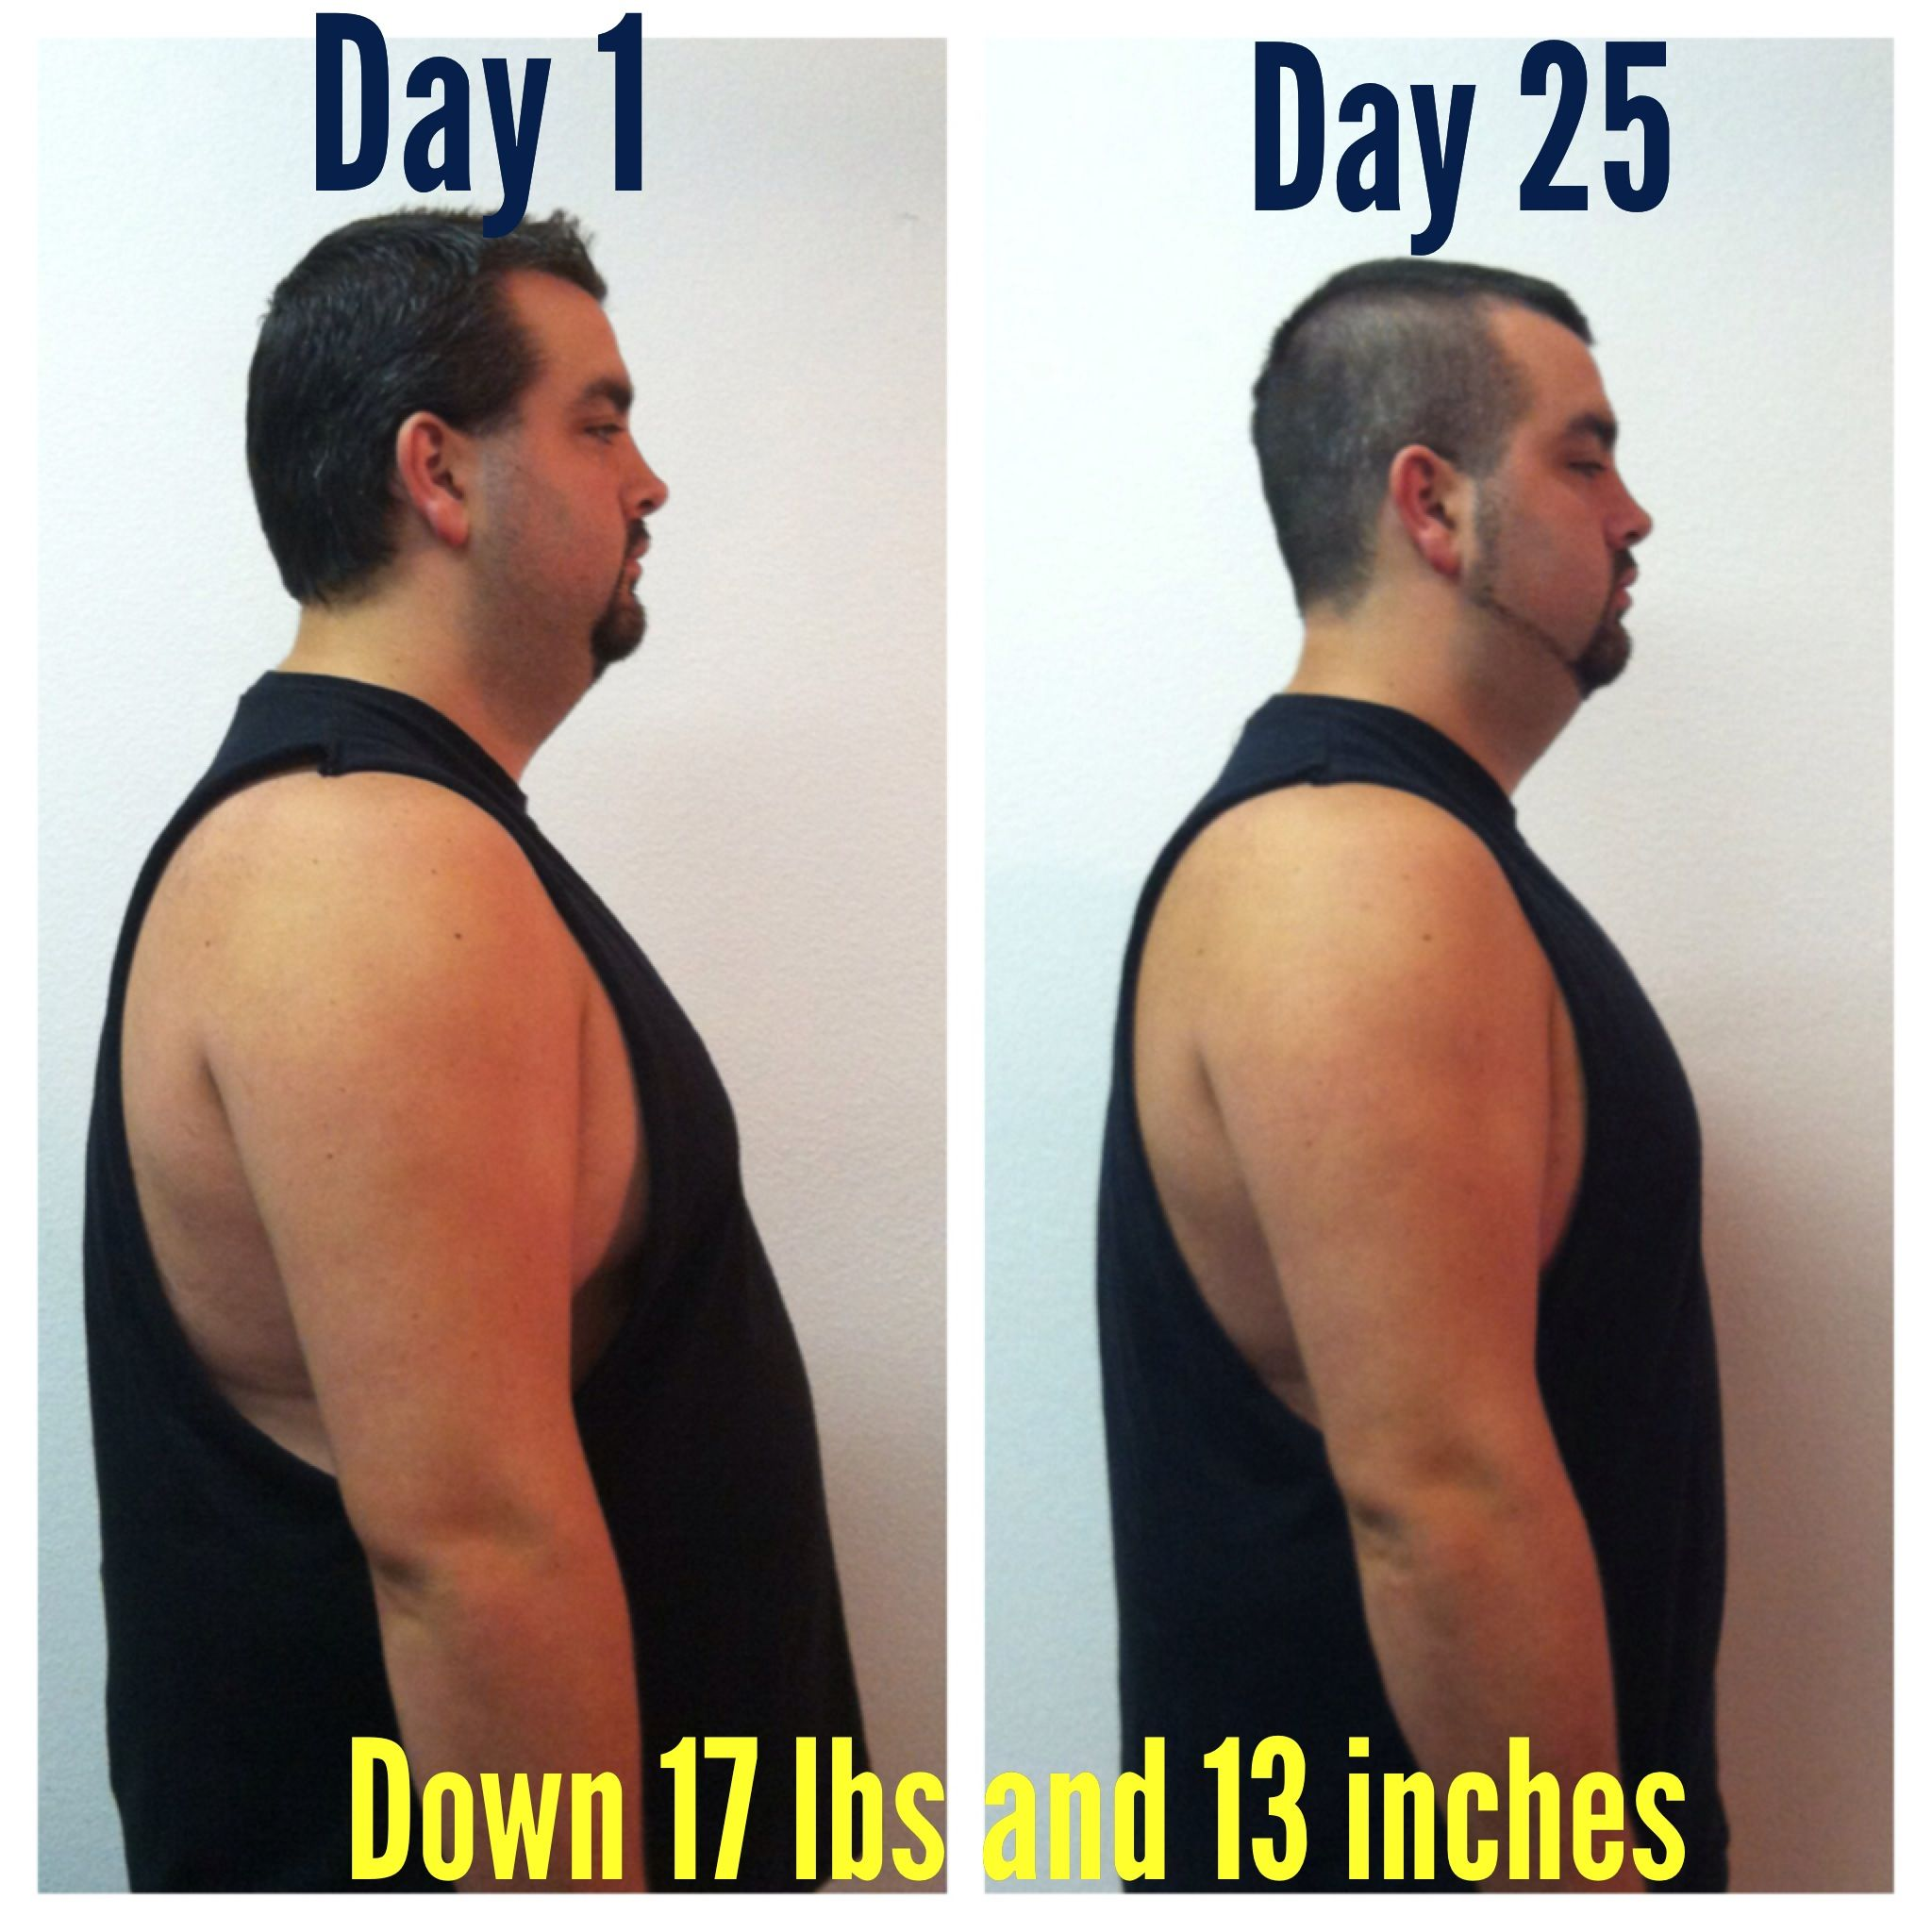 Todays Challenges For Crucial Aspects Of Weightlifting: AdvoCare's 24 Day Challenge! Take The Challenge Today